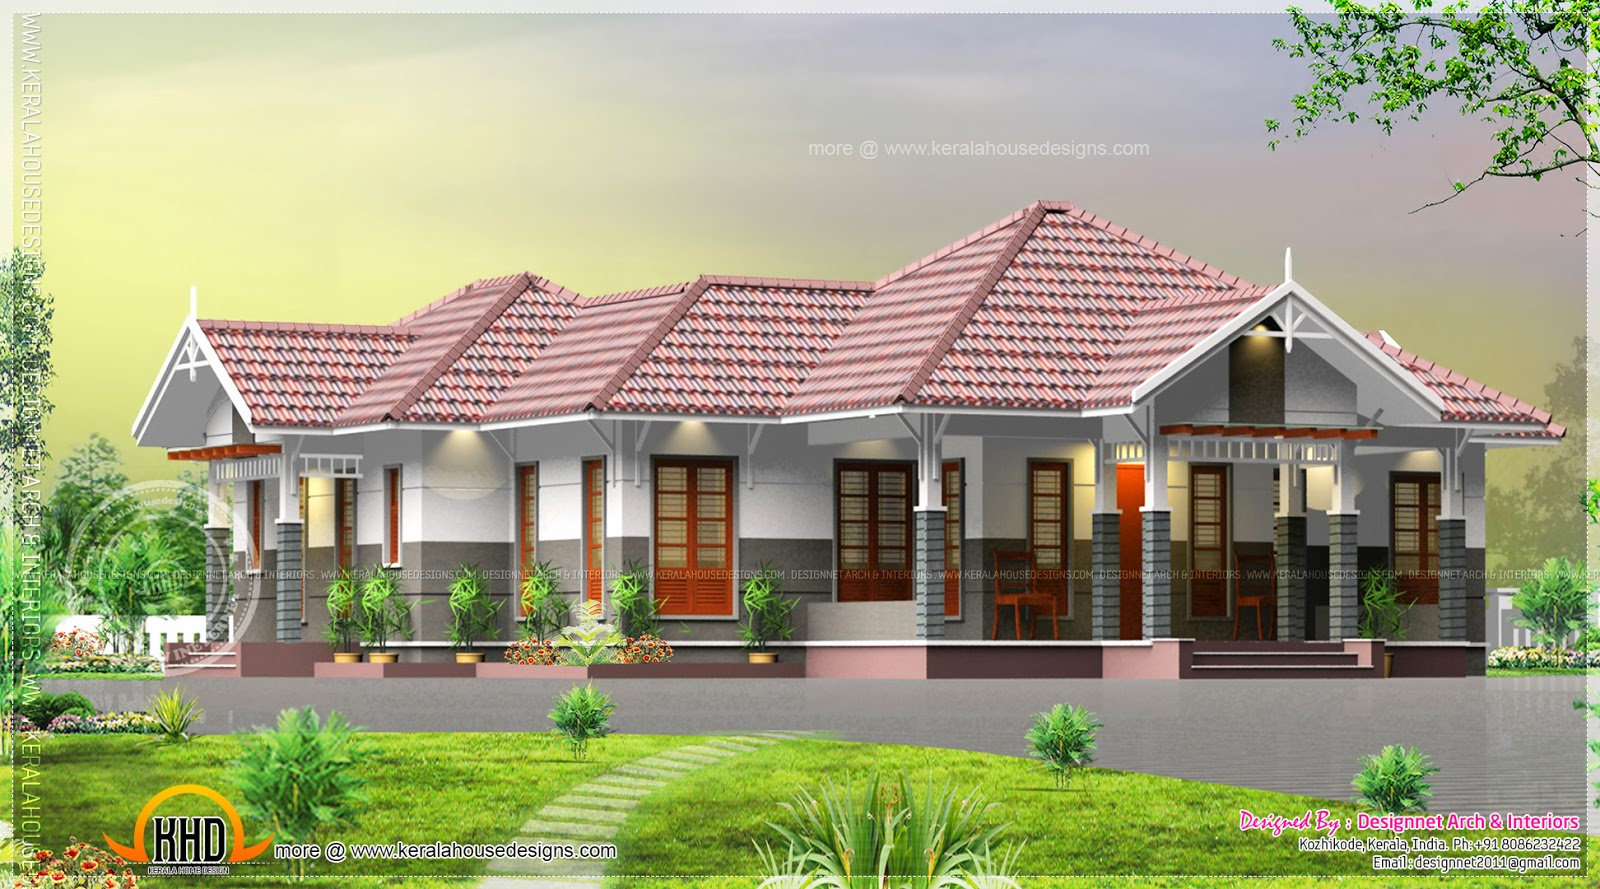 Single floor courtyard 4 bedroom house kerala home for Single floor house plans kerala style